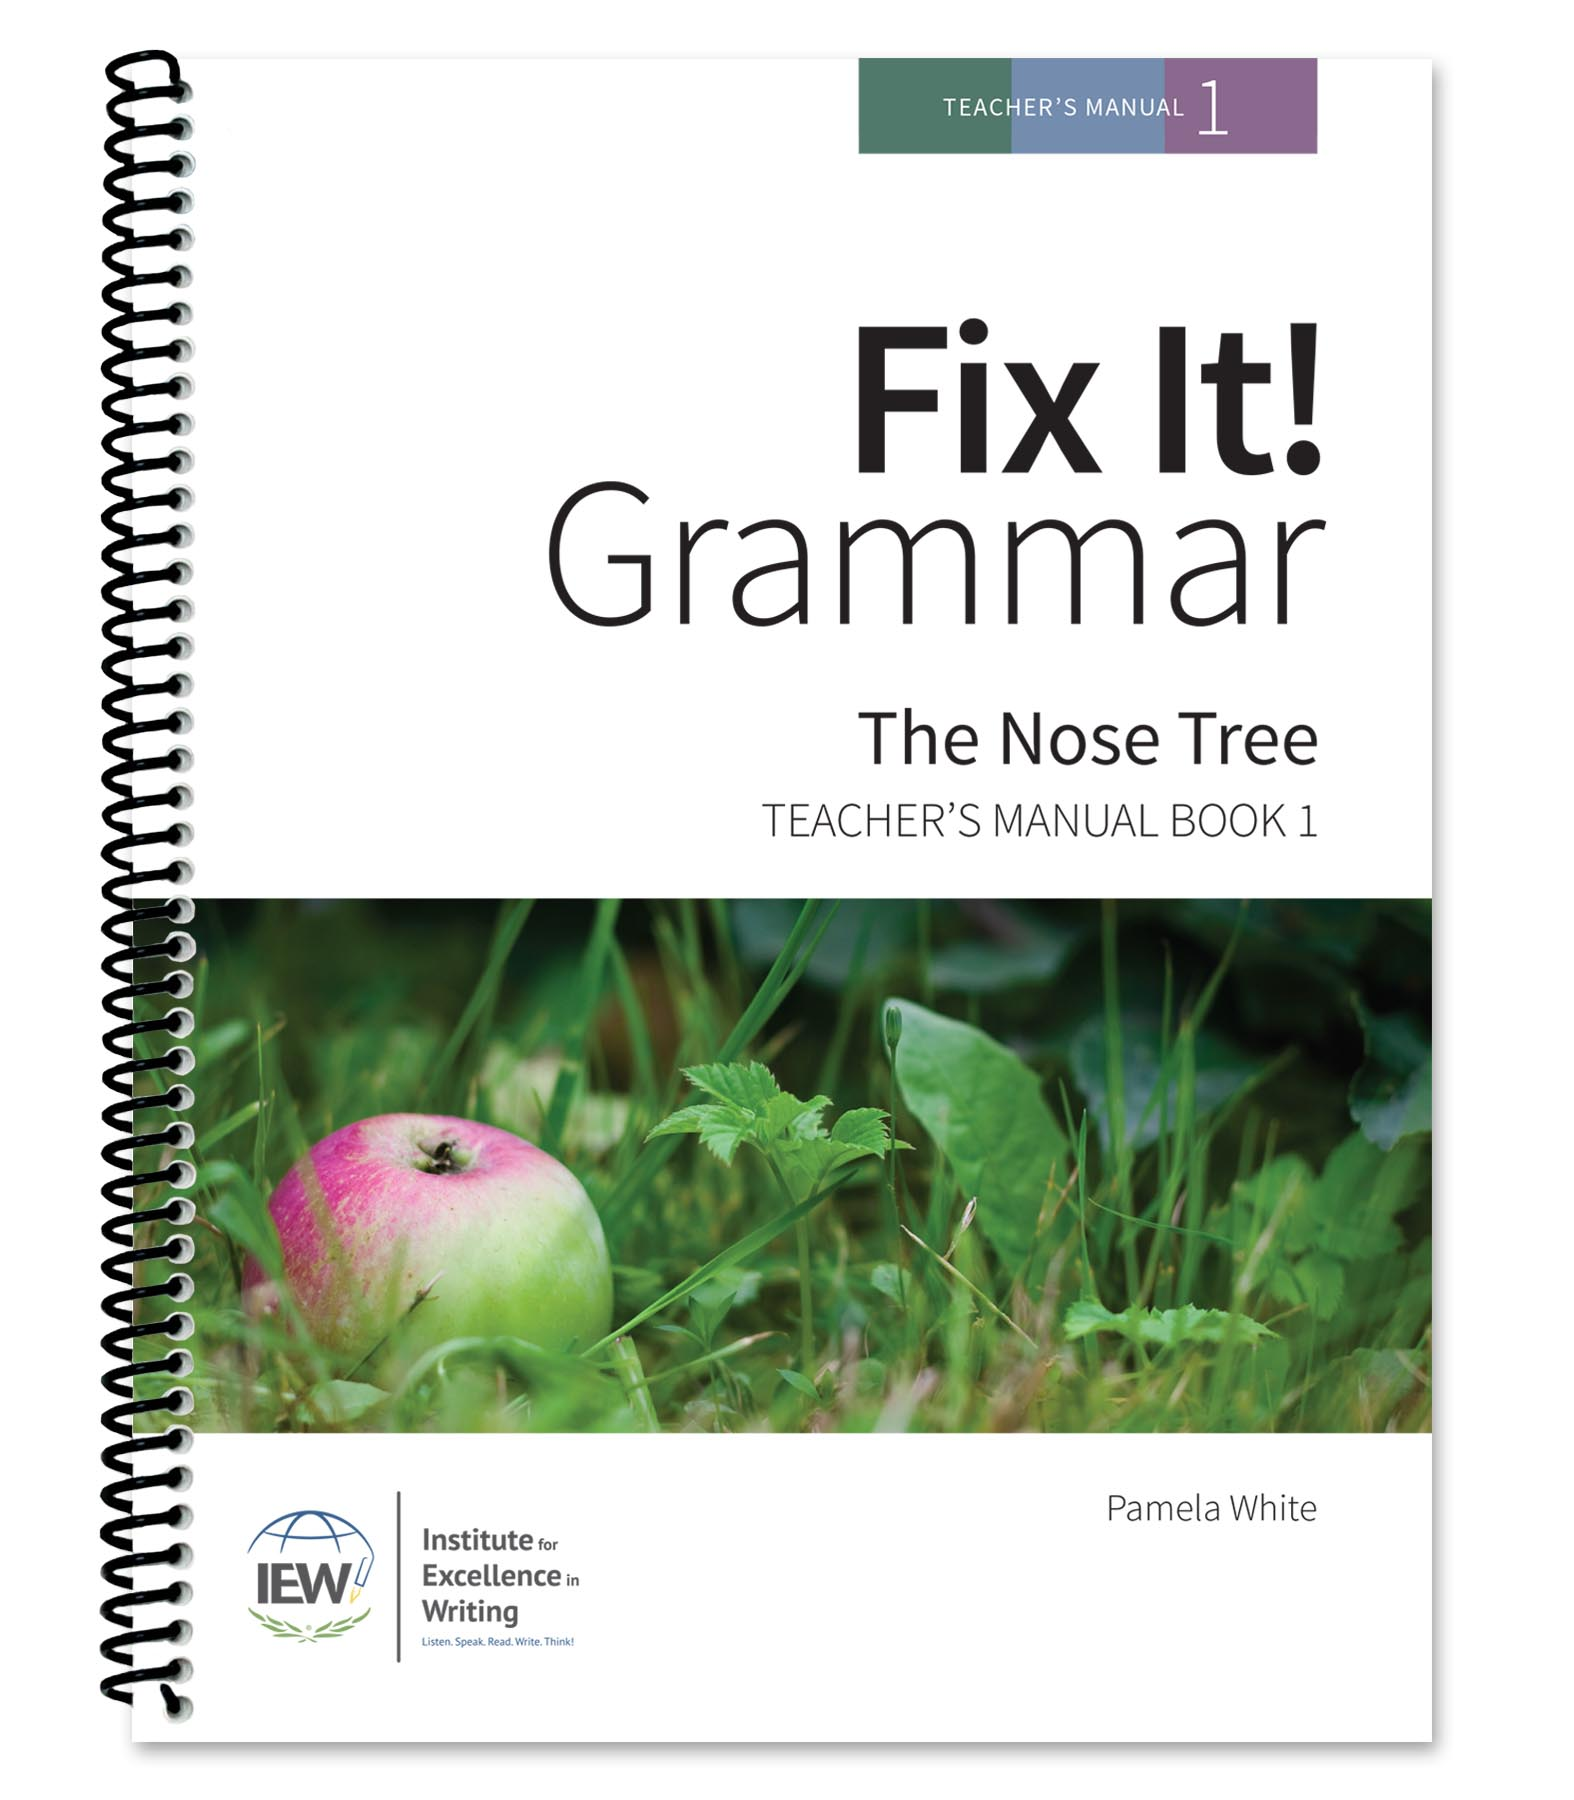 Fix It! Grammar: 1 - The Nose Tree, Teacher's Manual